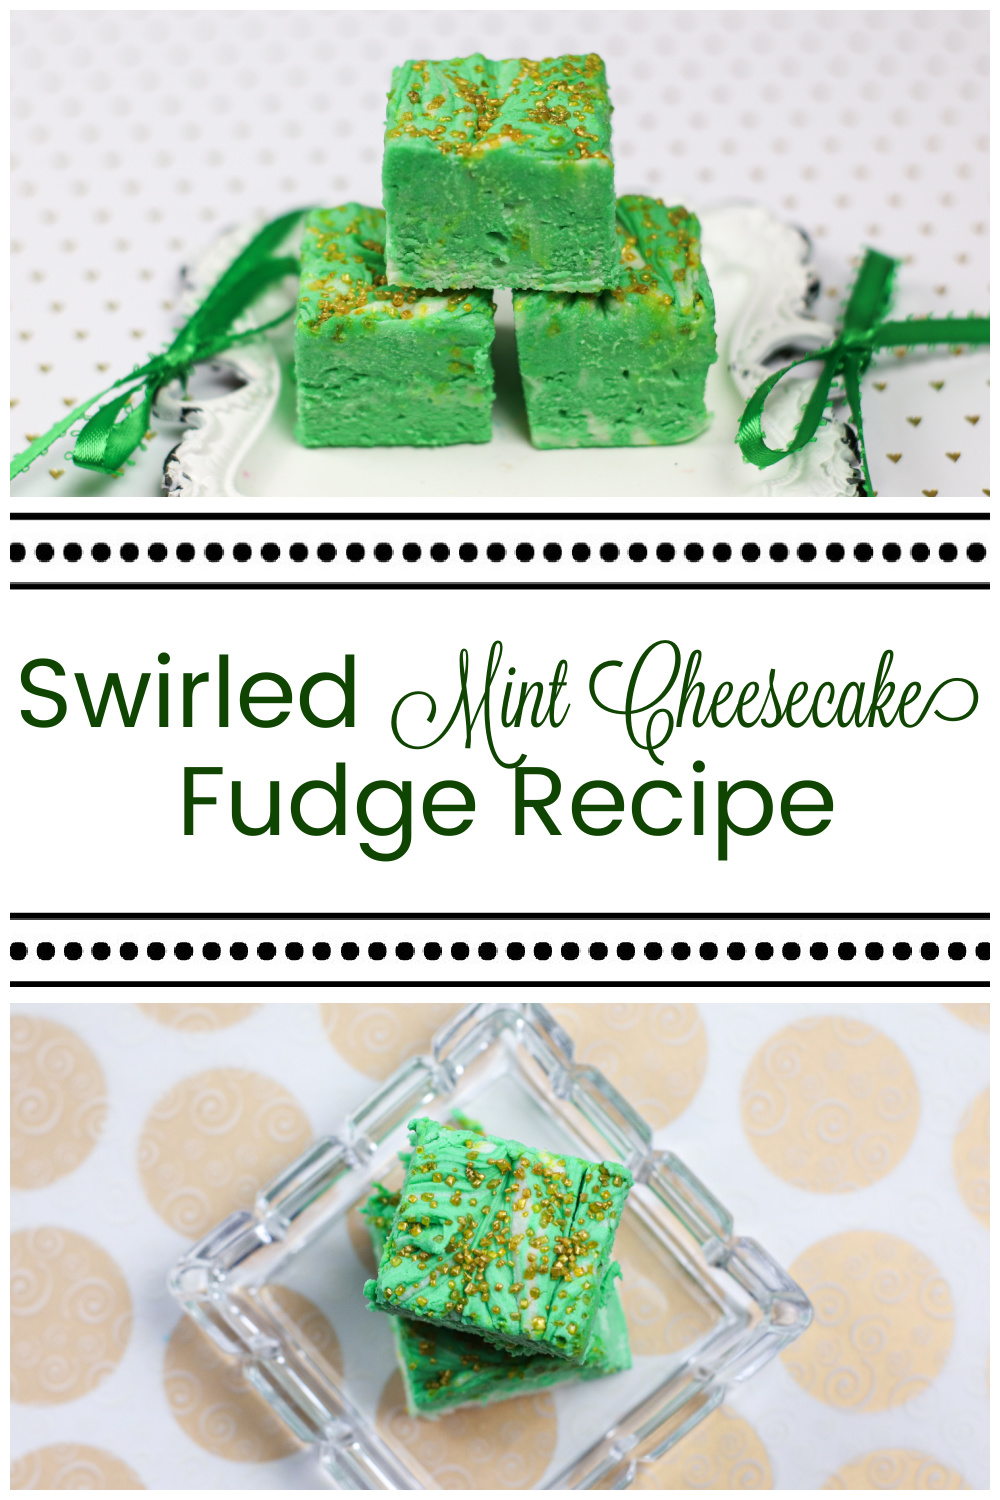 3 pieces of fudge on top of a small white metal tray and three pieces of fudge in a square glass tray on gold and white paper for Swirled Mint Cheesecake Fudge Recipe